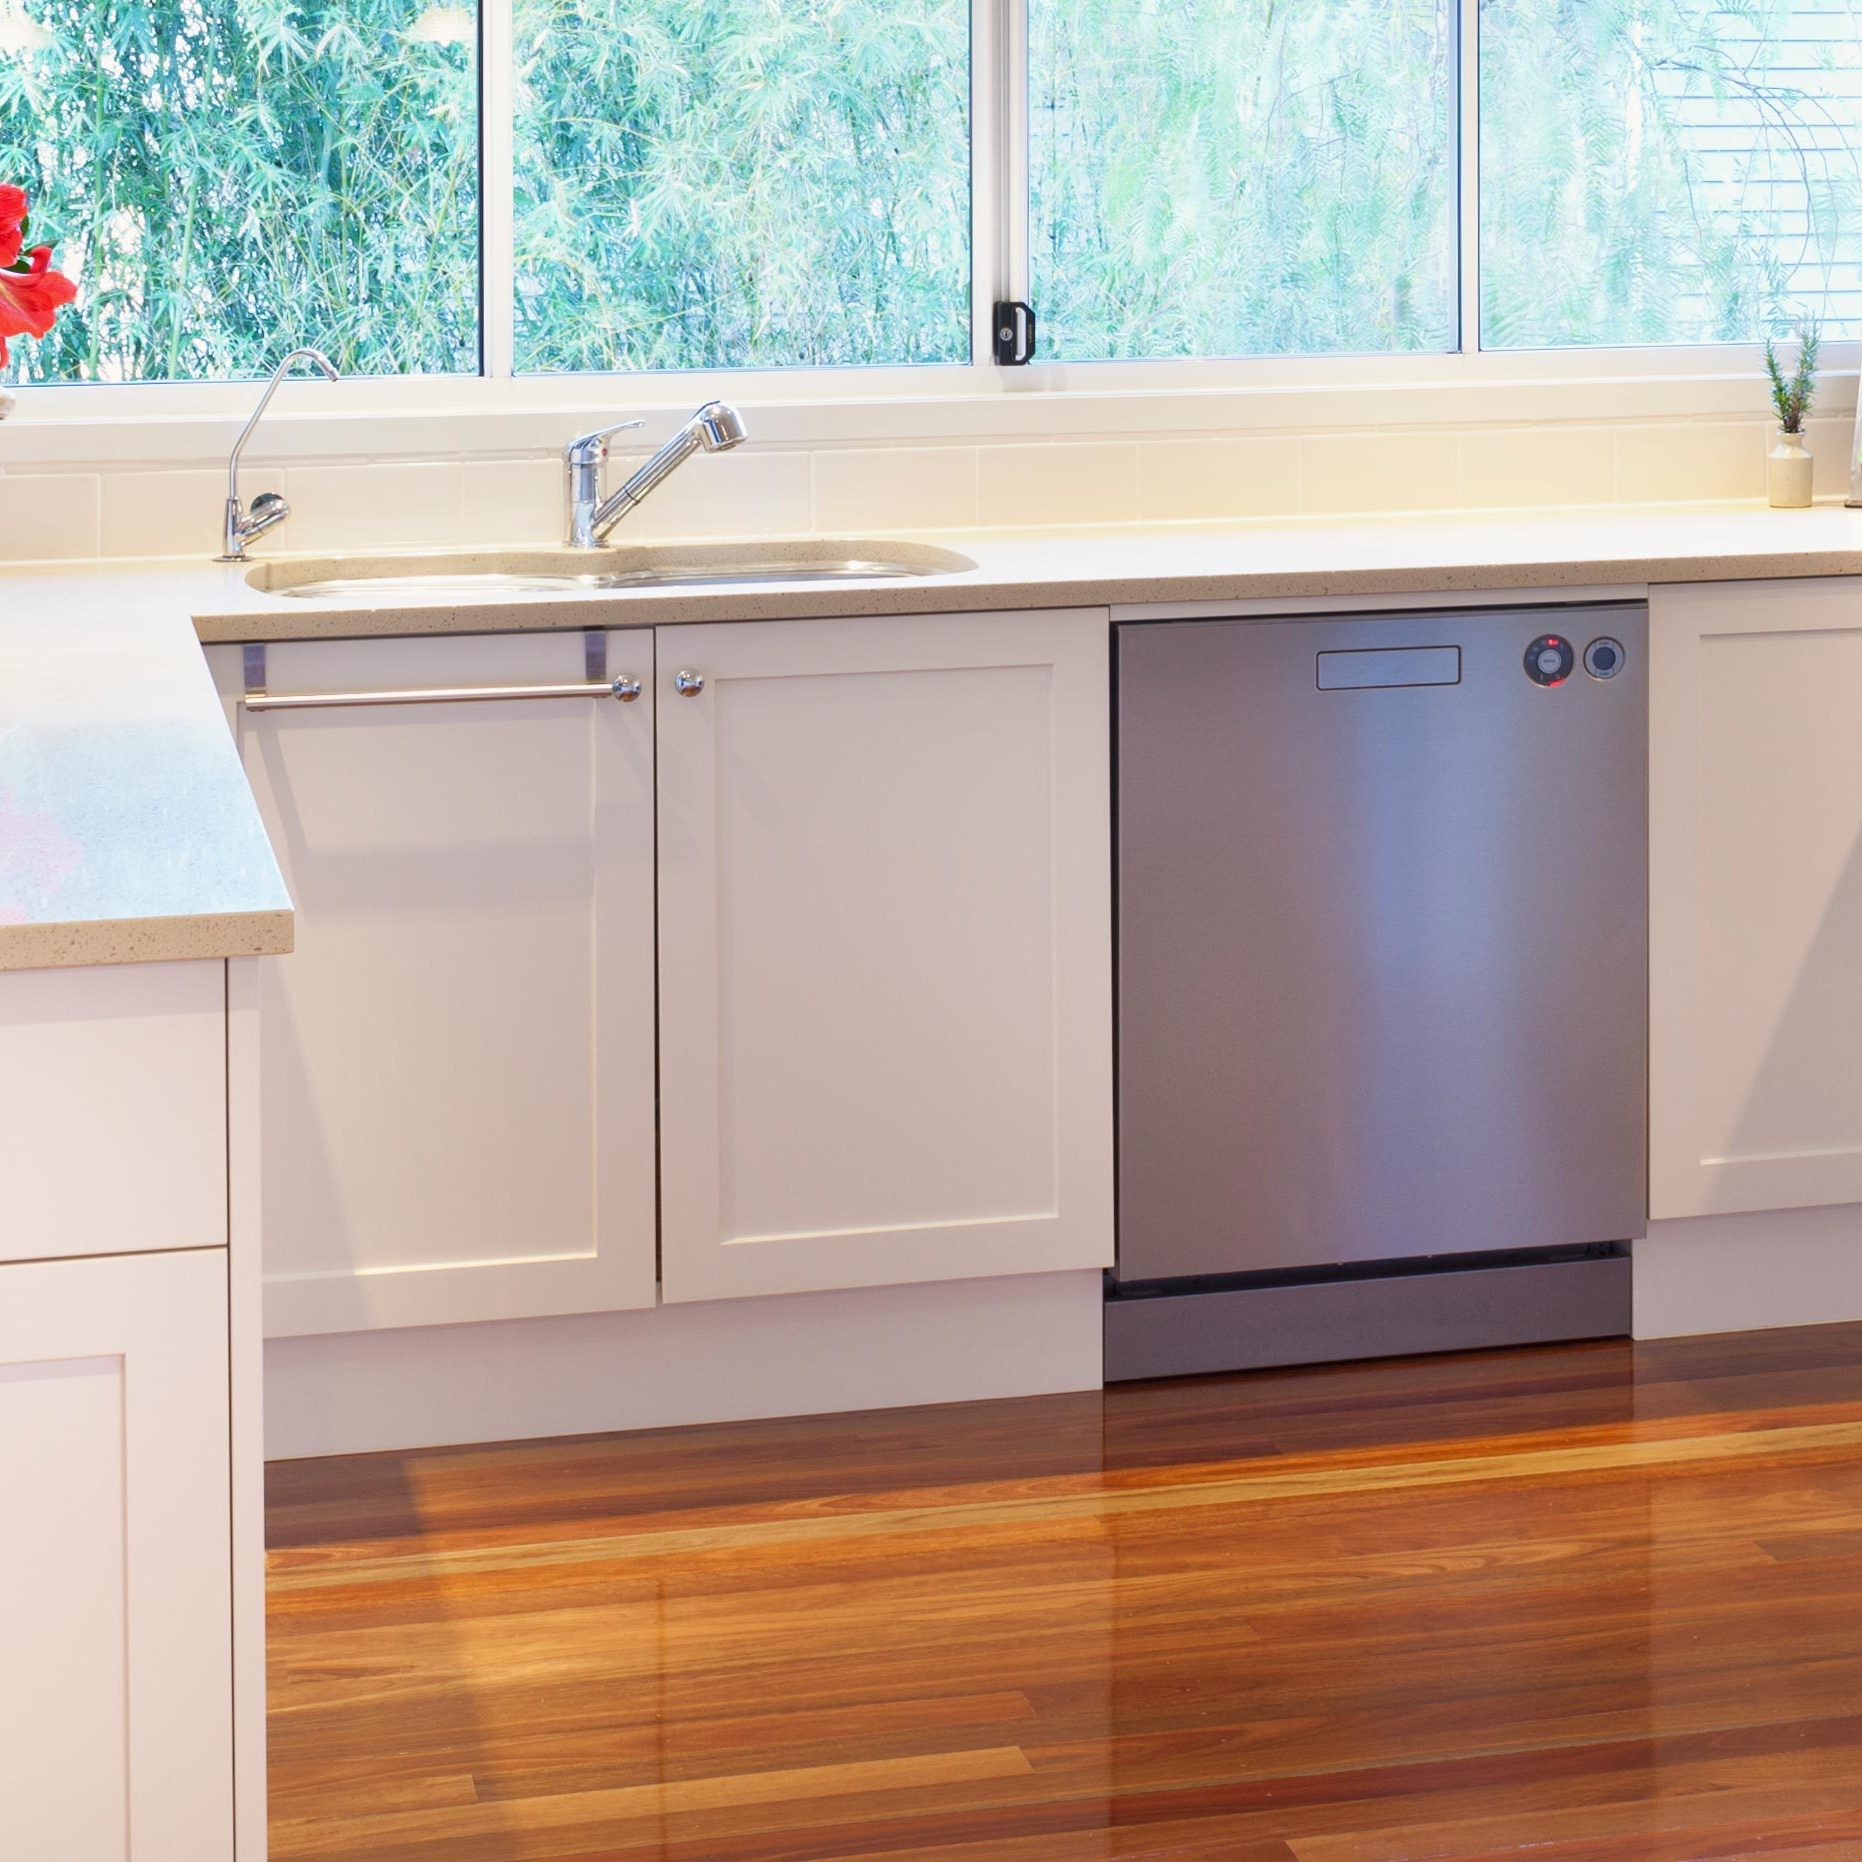 Uncategorized Kitchen Appliances Perth kitchen appliance installation walters carpentry gas dishwasher installation